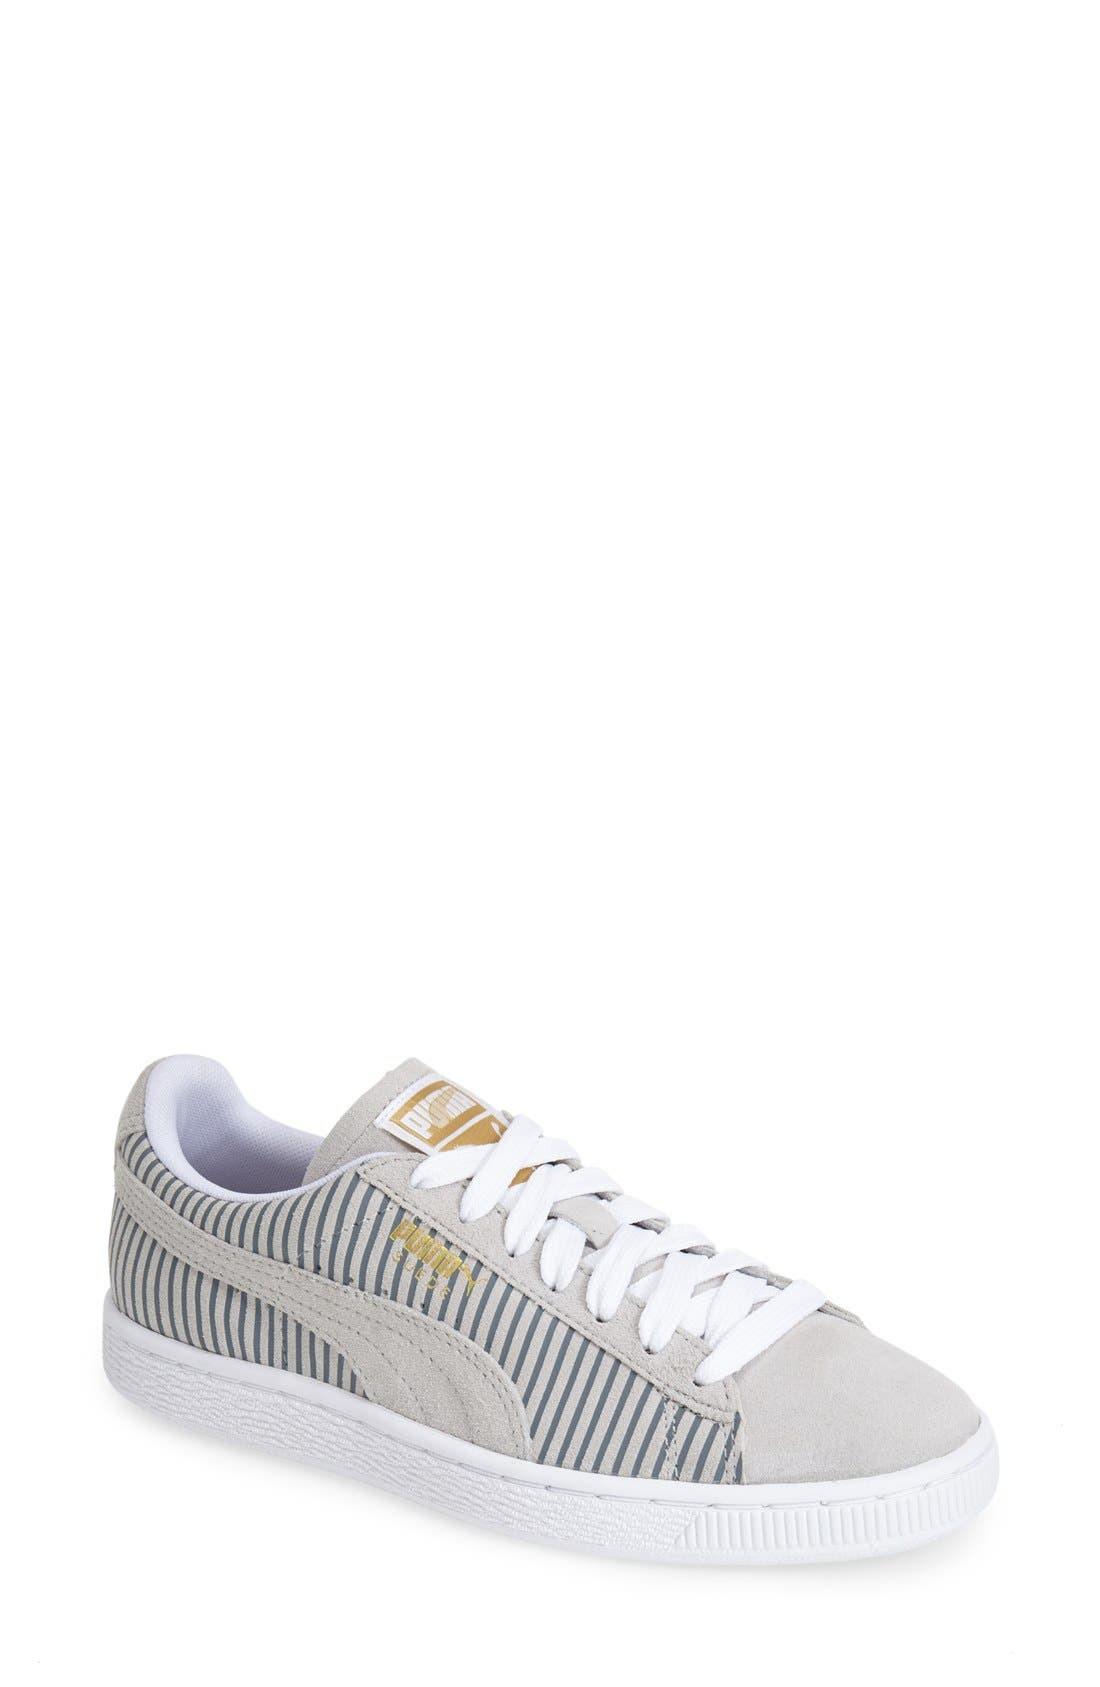 Alternate Image 1 Selected - PUMA 'Suede Classic' Sneaker (Women)